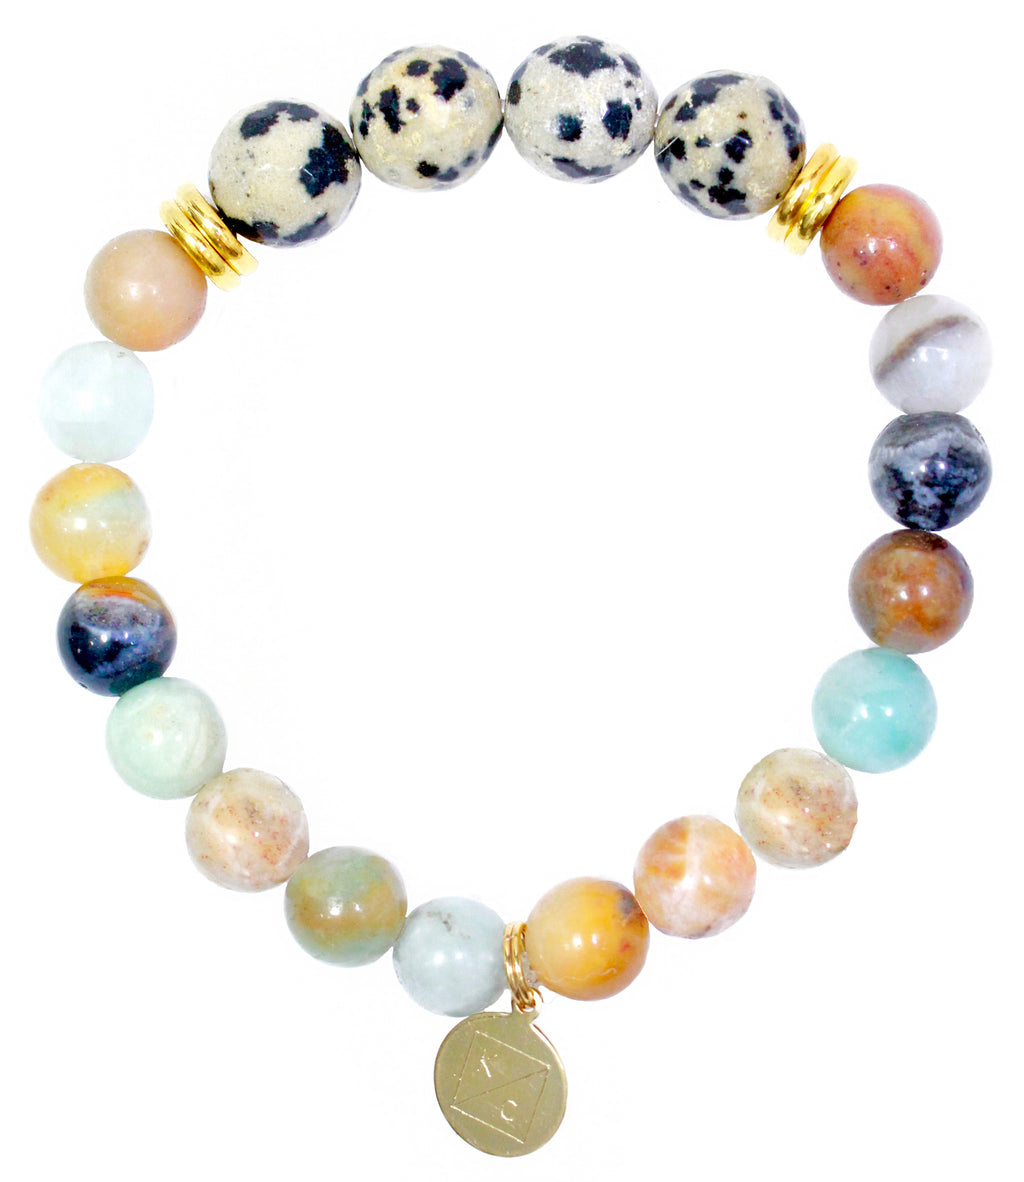 Dalmatian Jasper and Amazonite Gemstone Beaded Stretch Bracelet - Find Cute Handmade Gemstone Jewelry Online Now At Kendry Collection Boutique